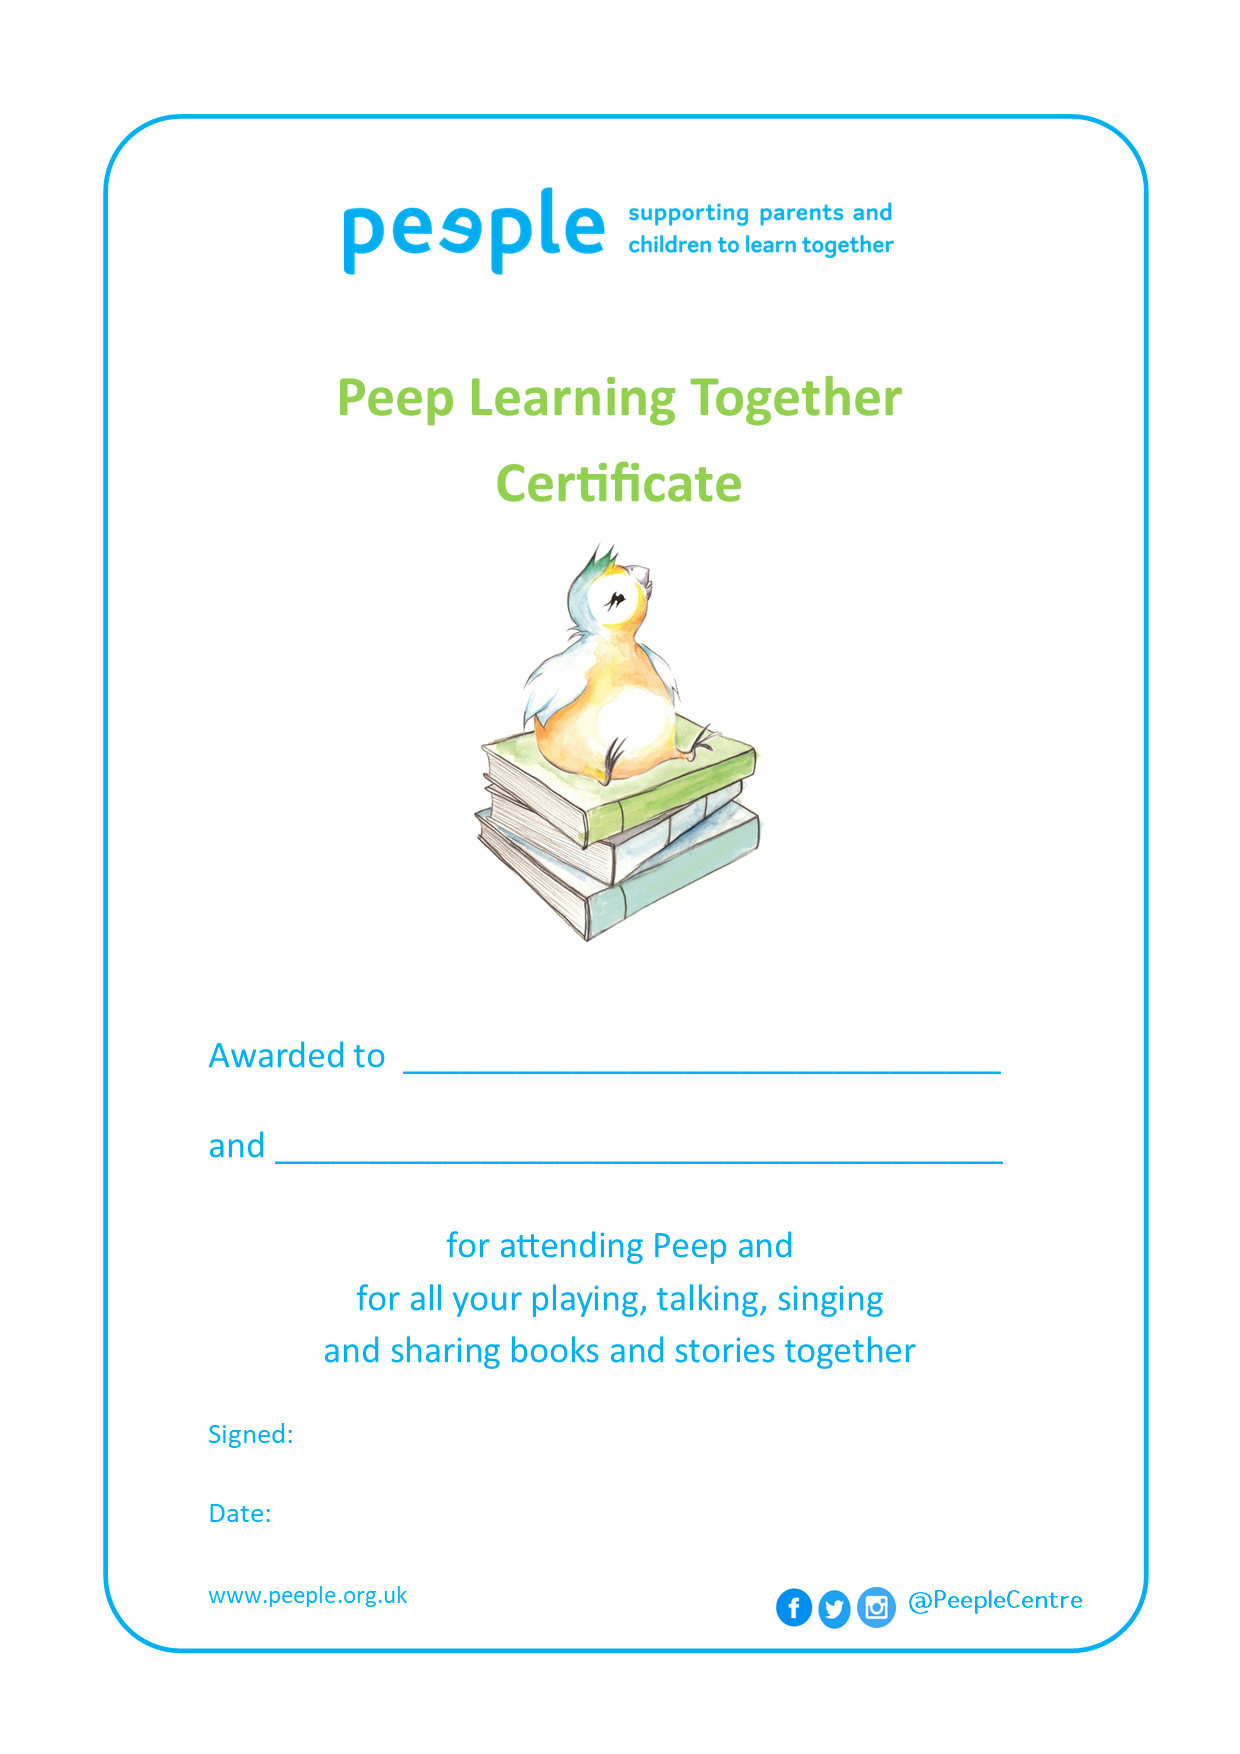 Certificate for Peep families